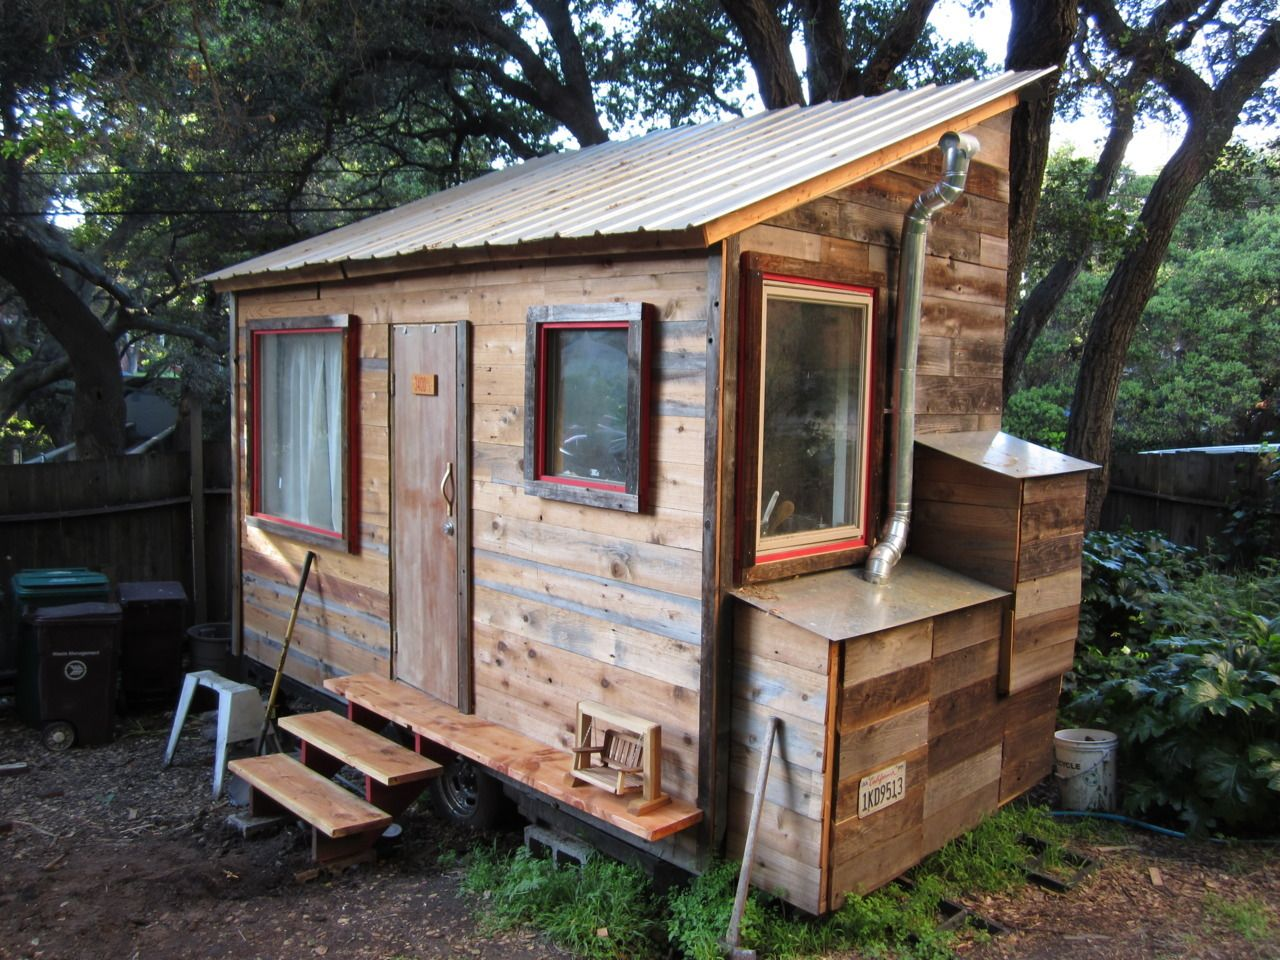 Tiny house under construction in oakland ca in 2019 - Oakland community college interior design ...